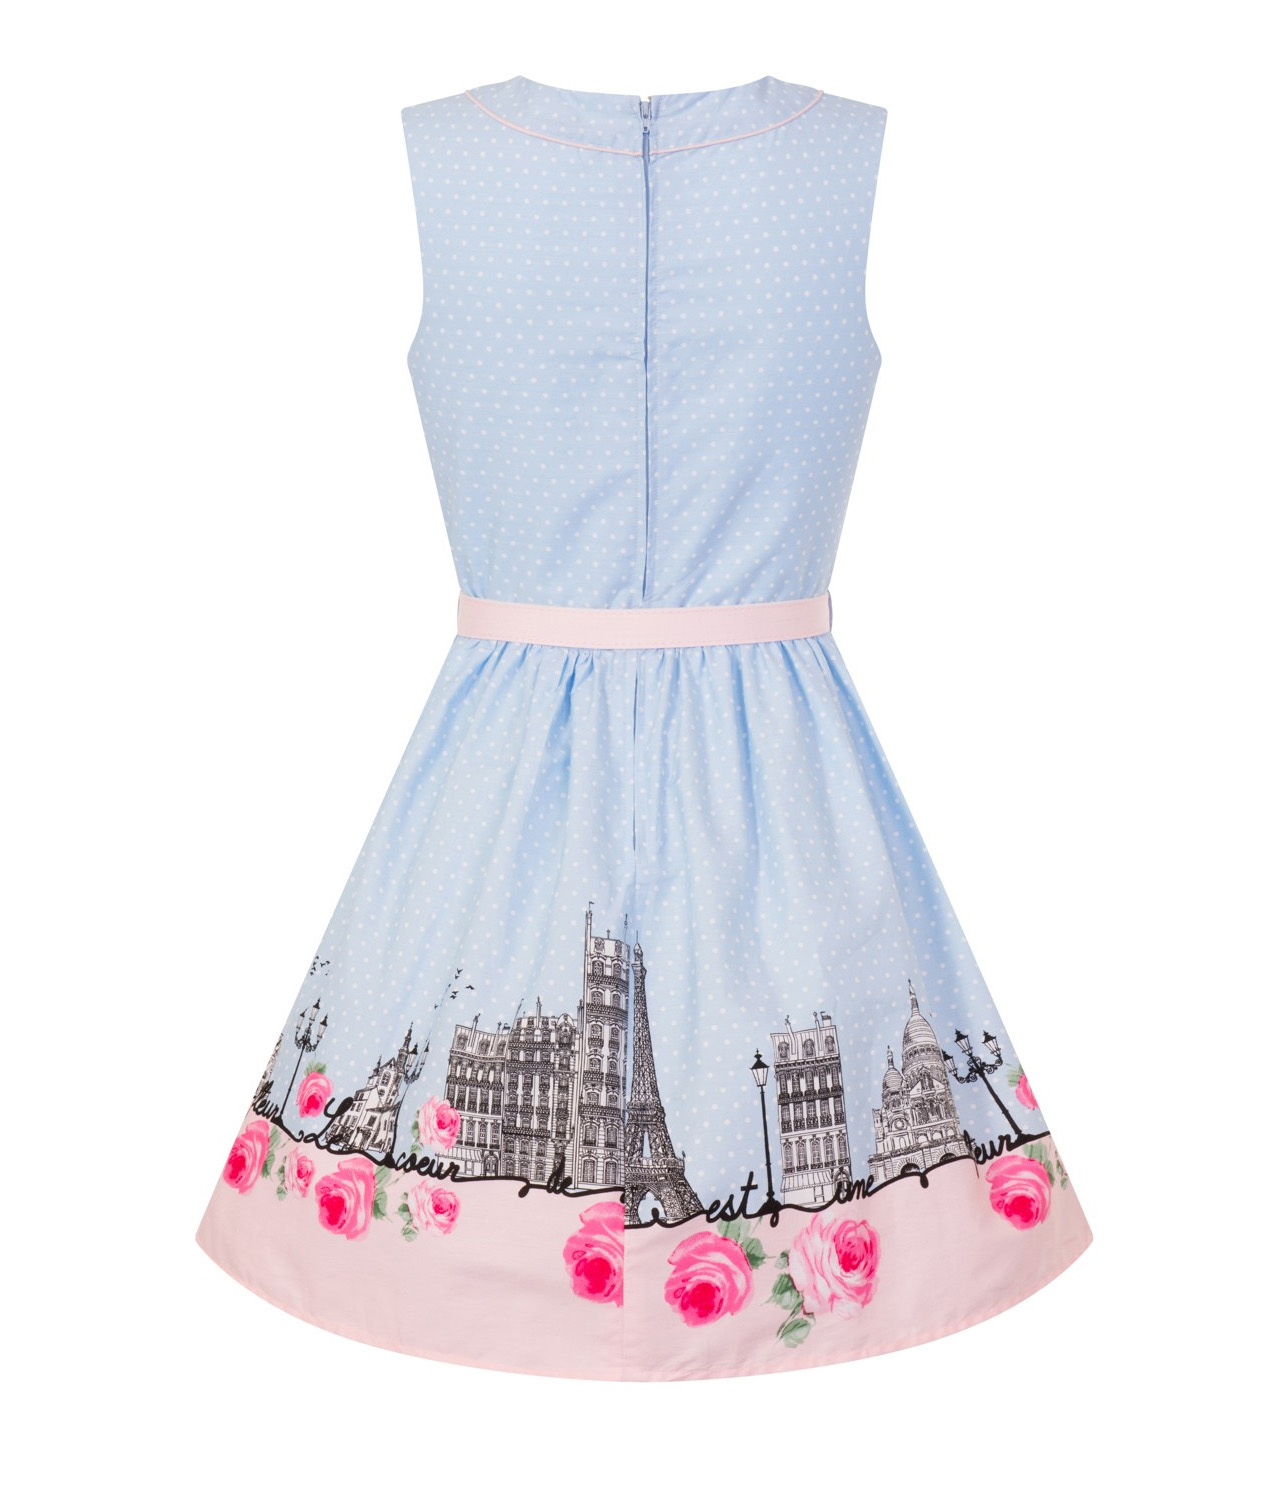 Hell-Bunny-50s-Vintage-Blue-Polka-Dot-PANAME-Mini-Dress-Paris-All-Sizes thumbnail 49